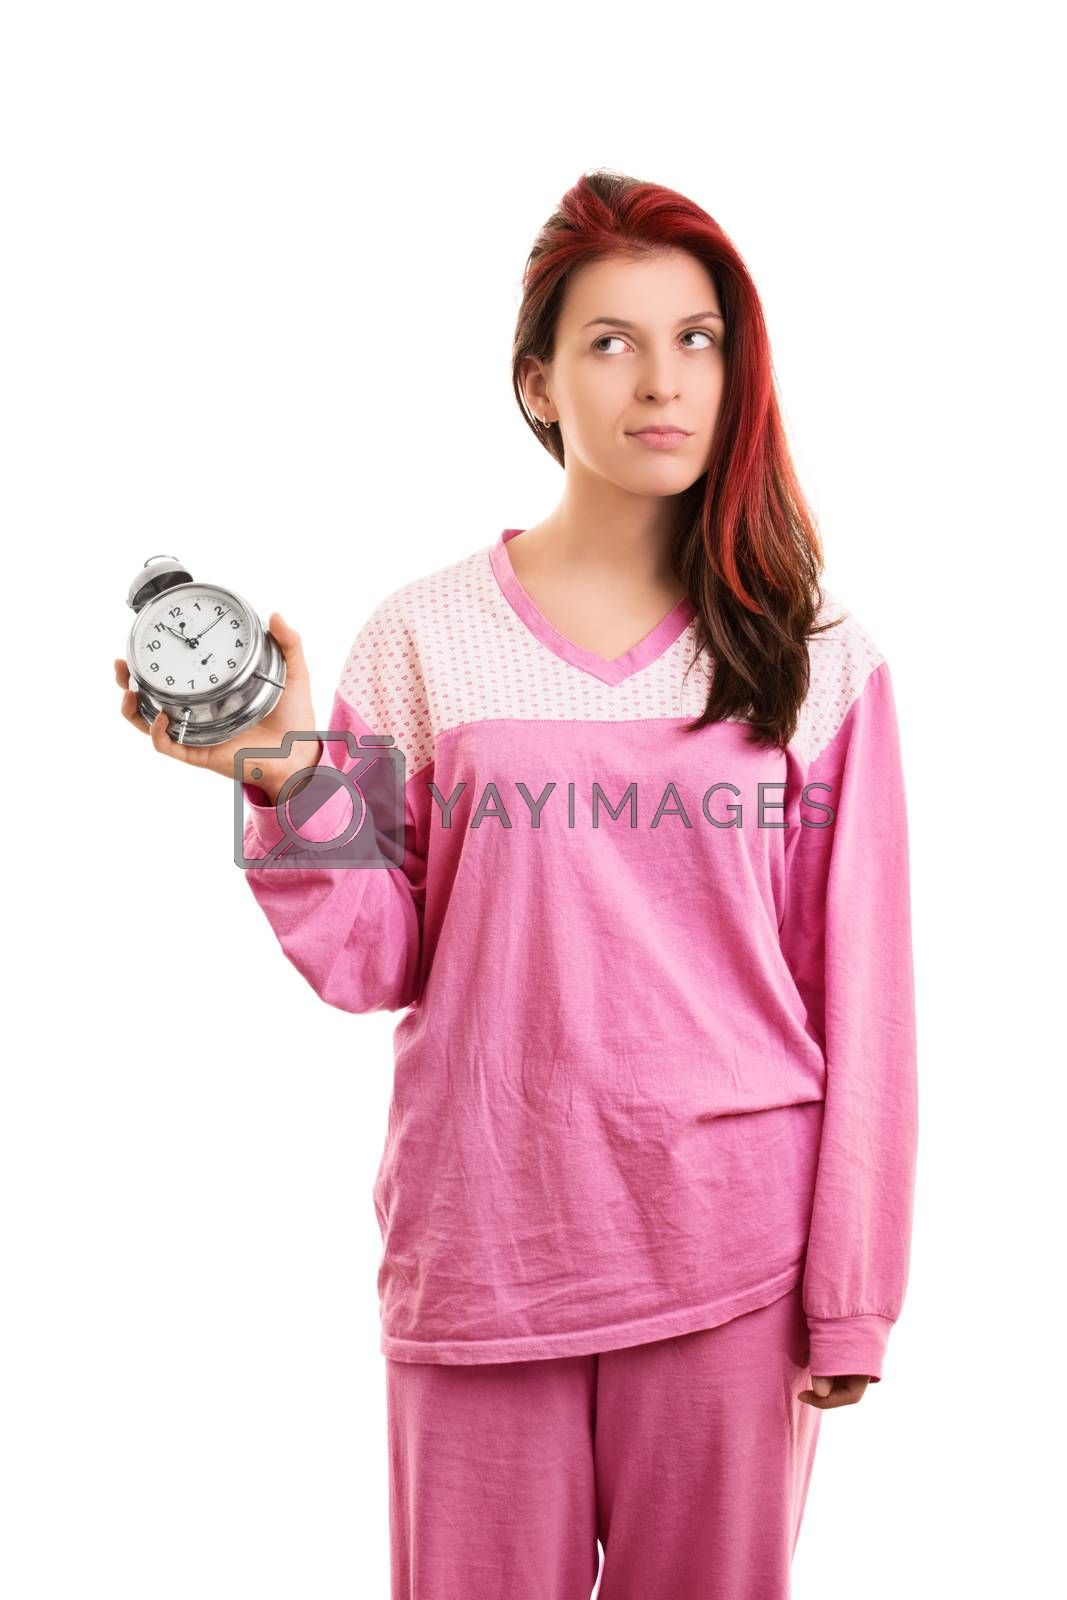 Girl in pajamas annoyed that overslept again by Mendelex